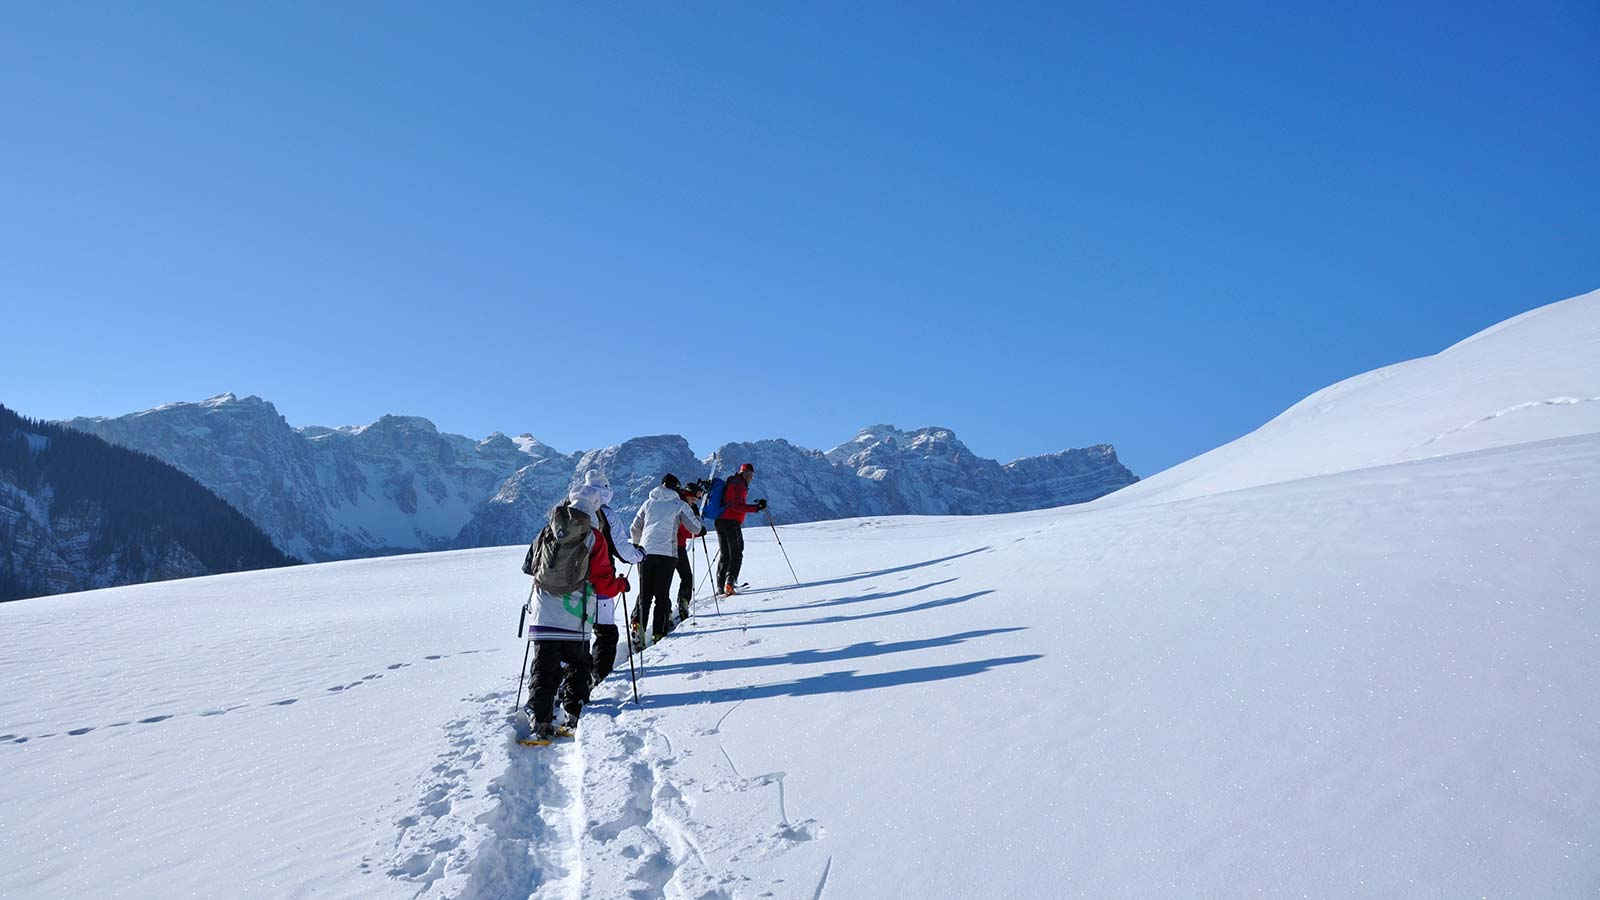 Hikers with snowshoes walk in single file in a snowy valley in the Natural Park Fanes-Sennes-Braies